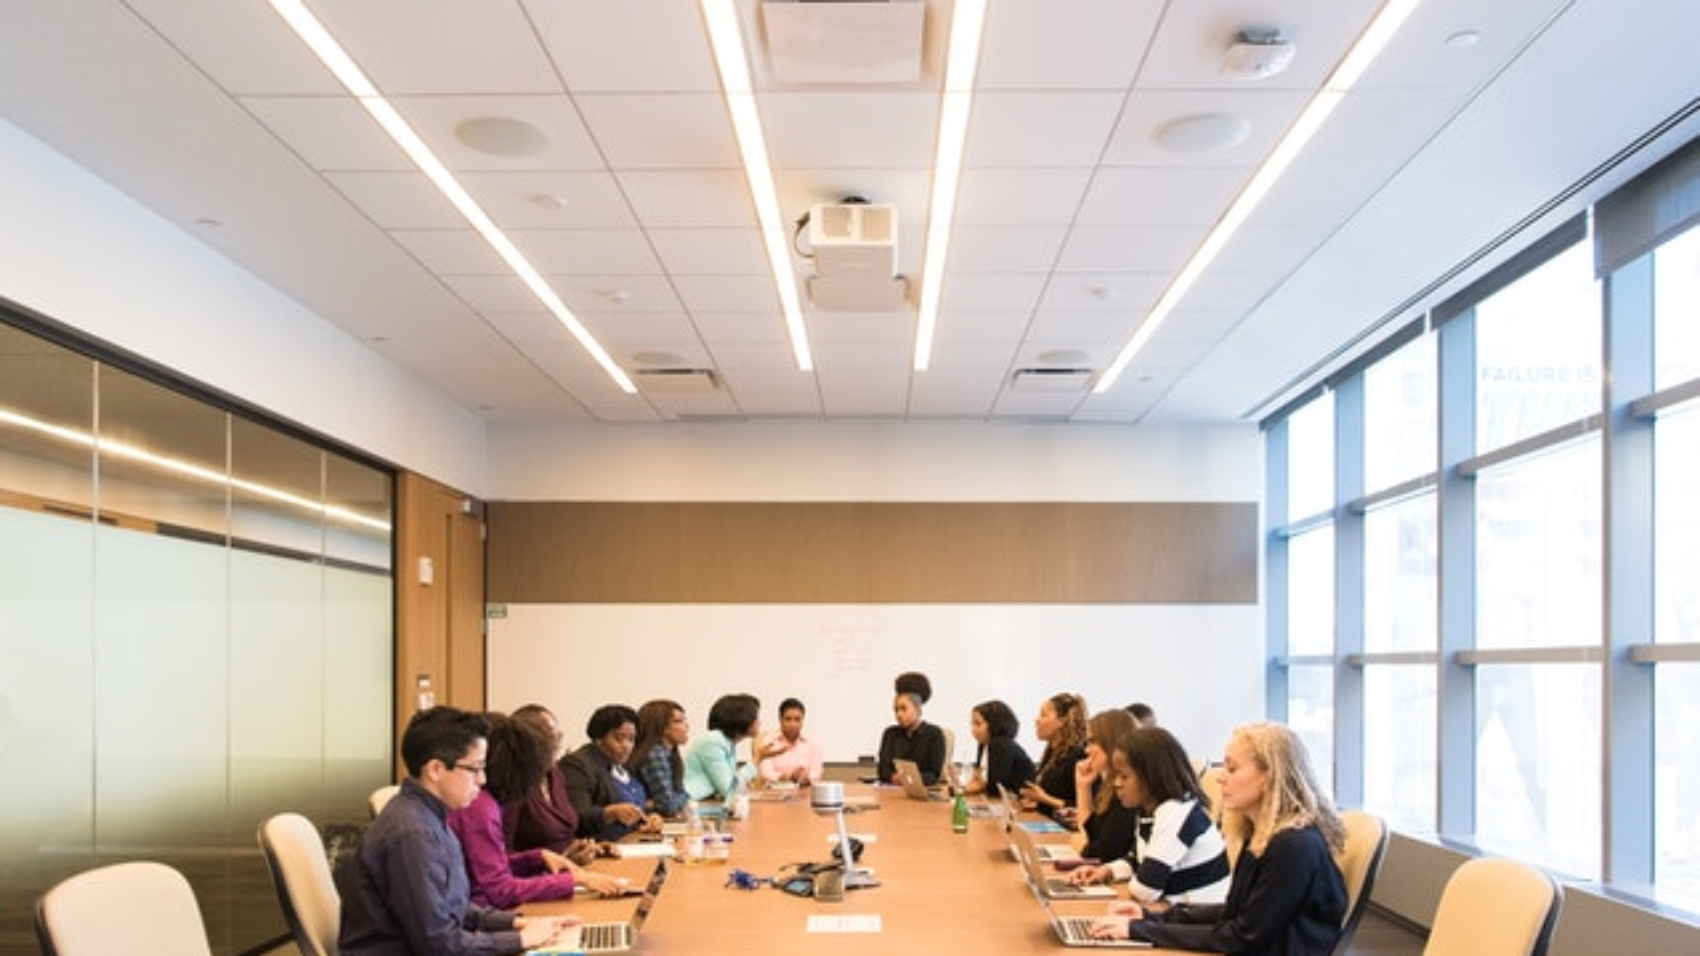 group-of-people-in-conference-room-1181304 (1)